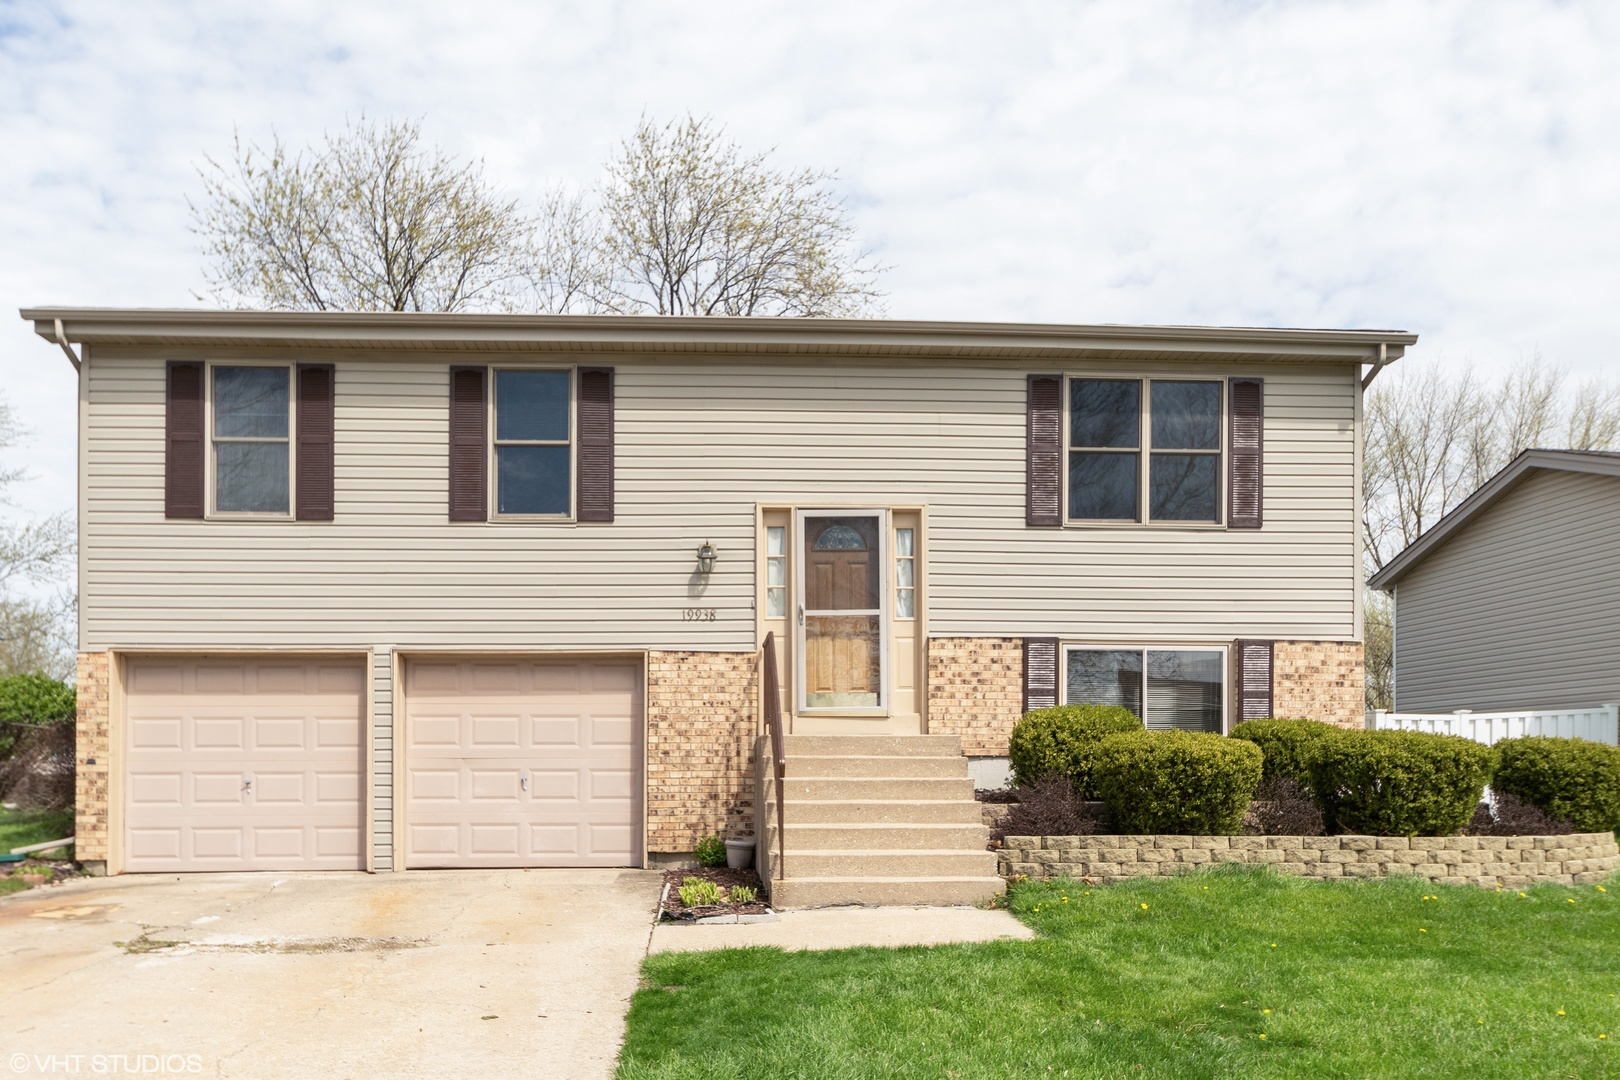 19938 South Sycamore, FRANKFORT, Illinois, 60423